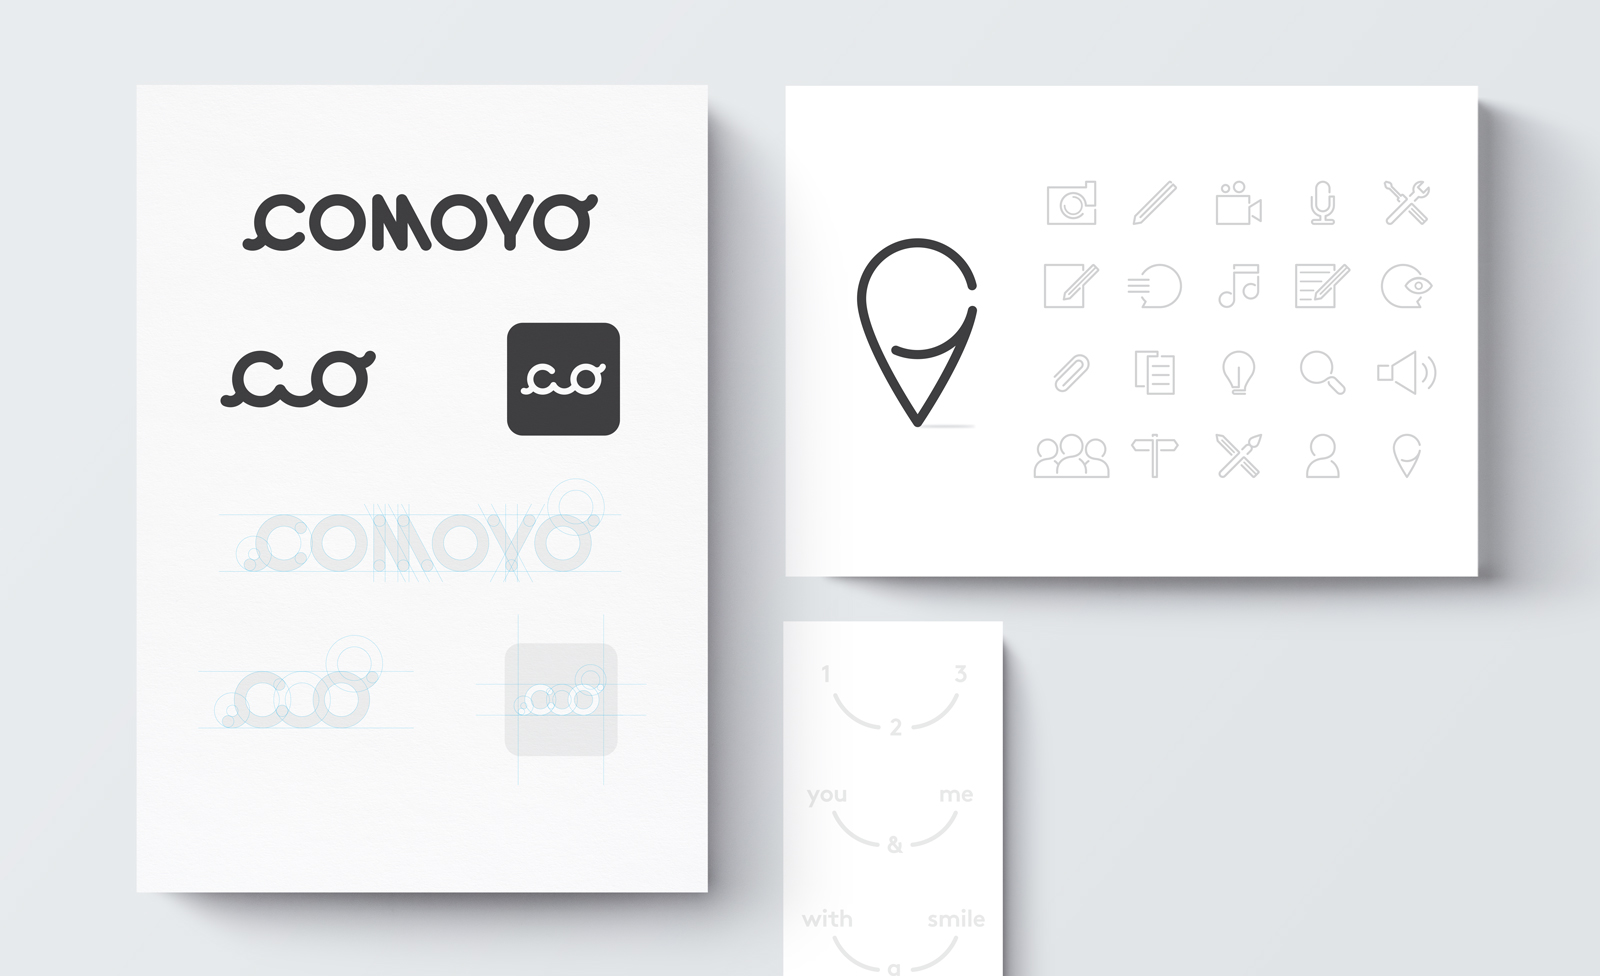 → Toolbox with visual identity